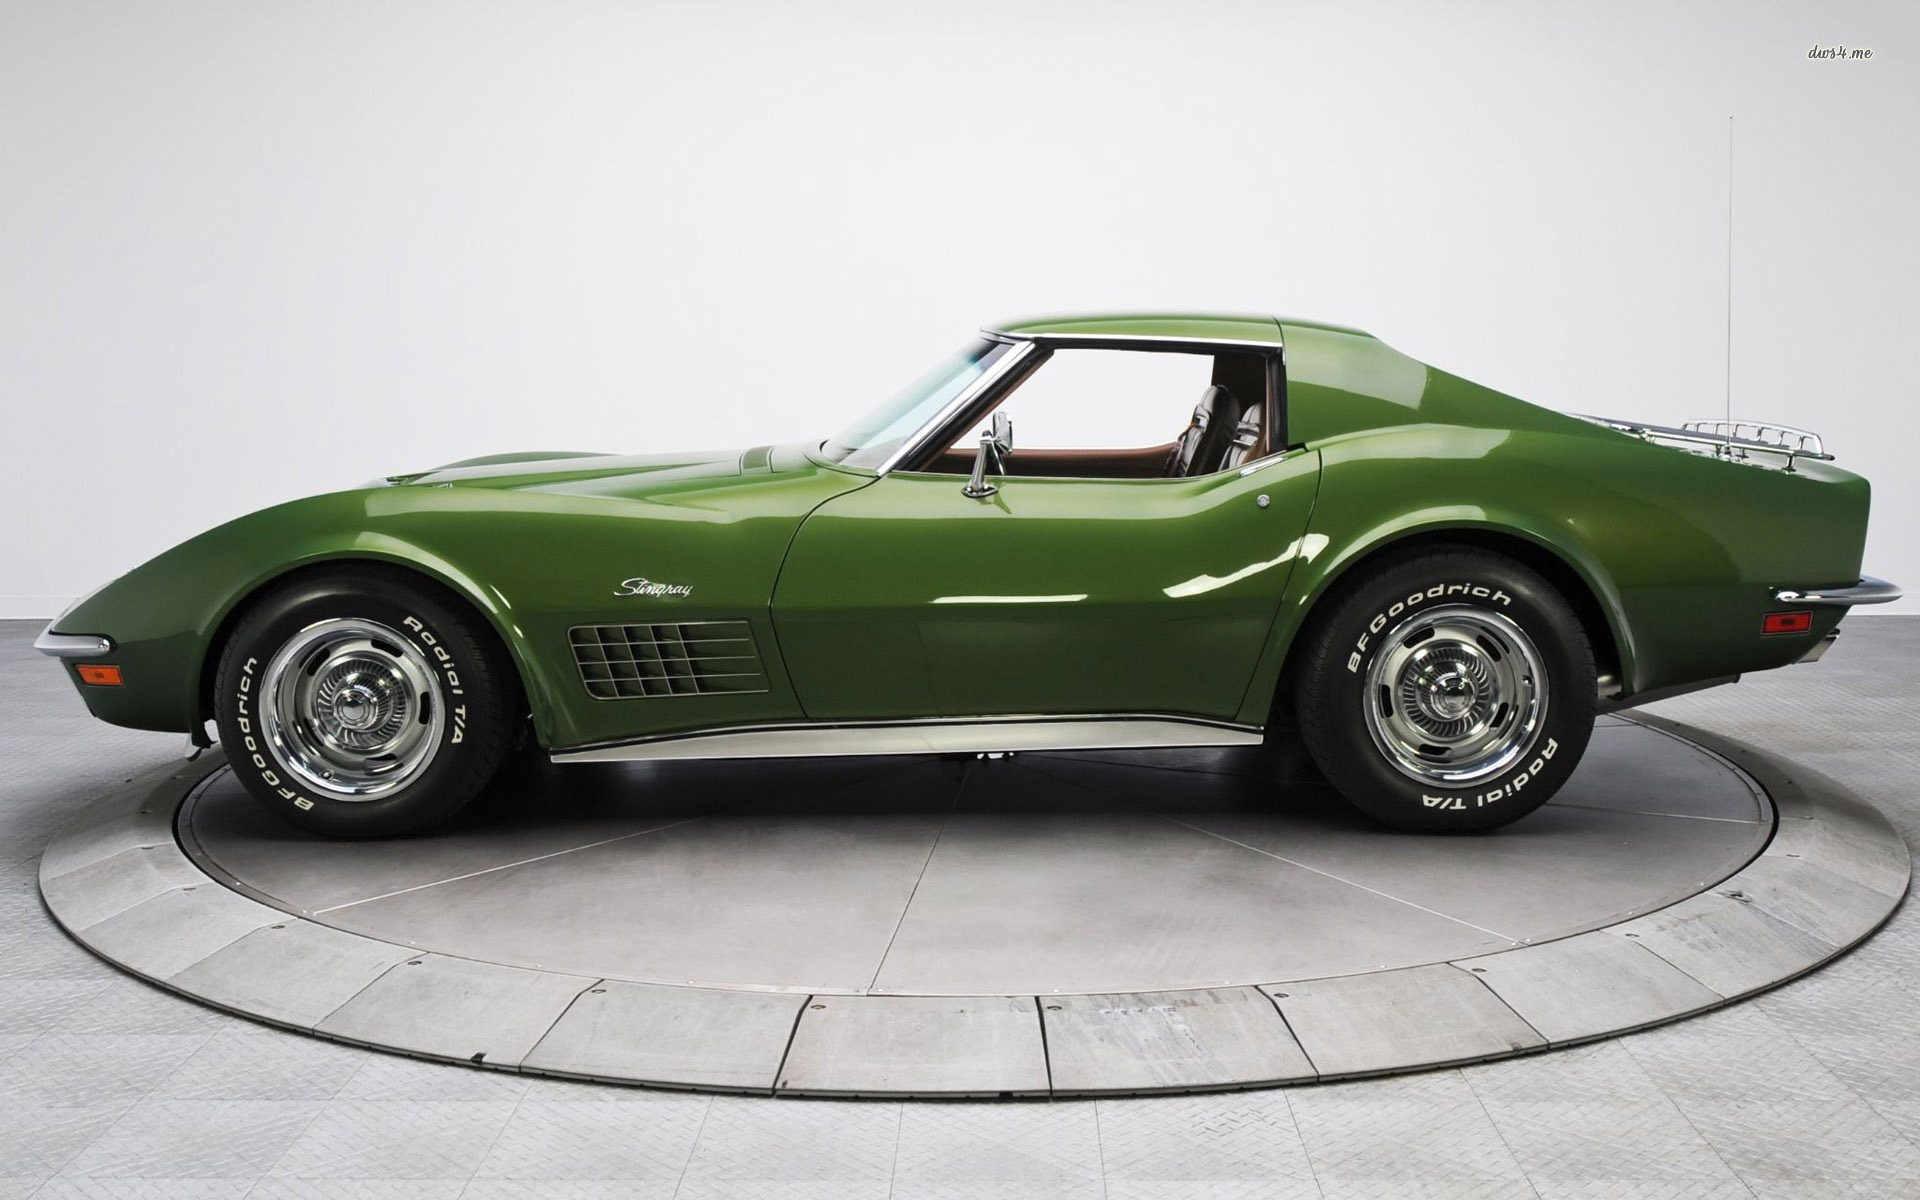 23471 chevrolet corvette stingray 454 1920x1200 car wallpaper 1970 c3 corvette ultimate guide (overview, specs, vin info 1994 LT1 Corvette at webbmarketing.co